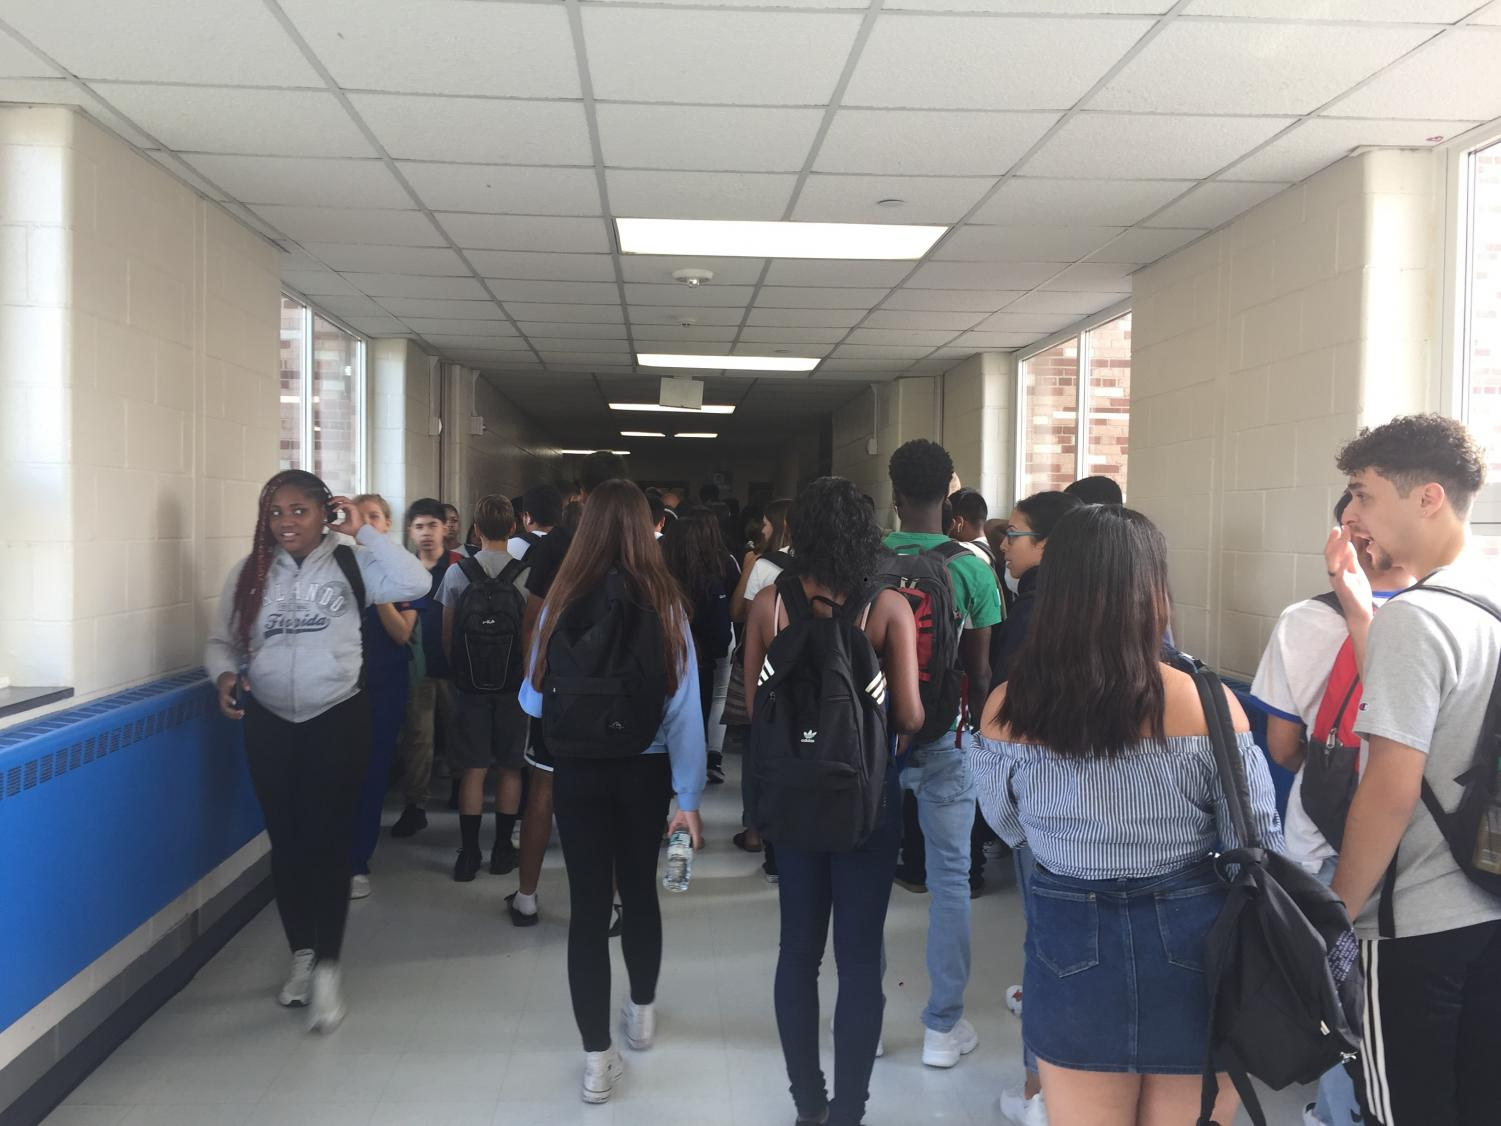 DHS students and faculty experience intense crowding in D3 hallways.